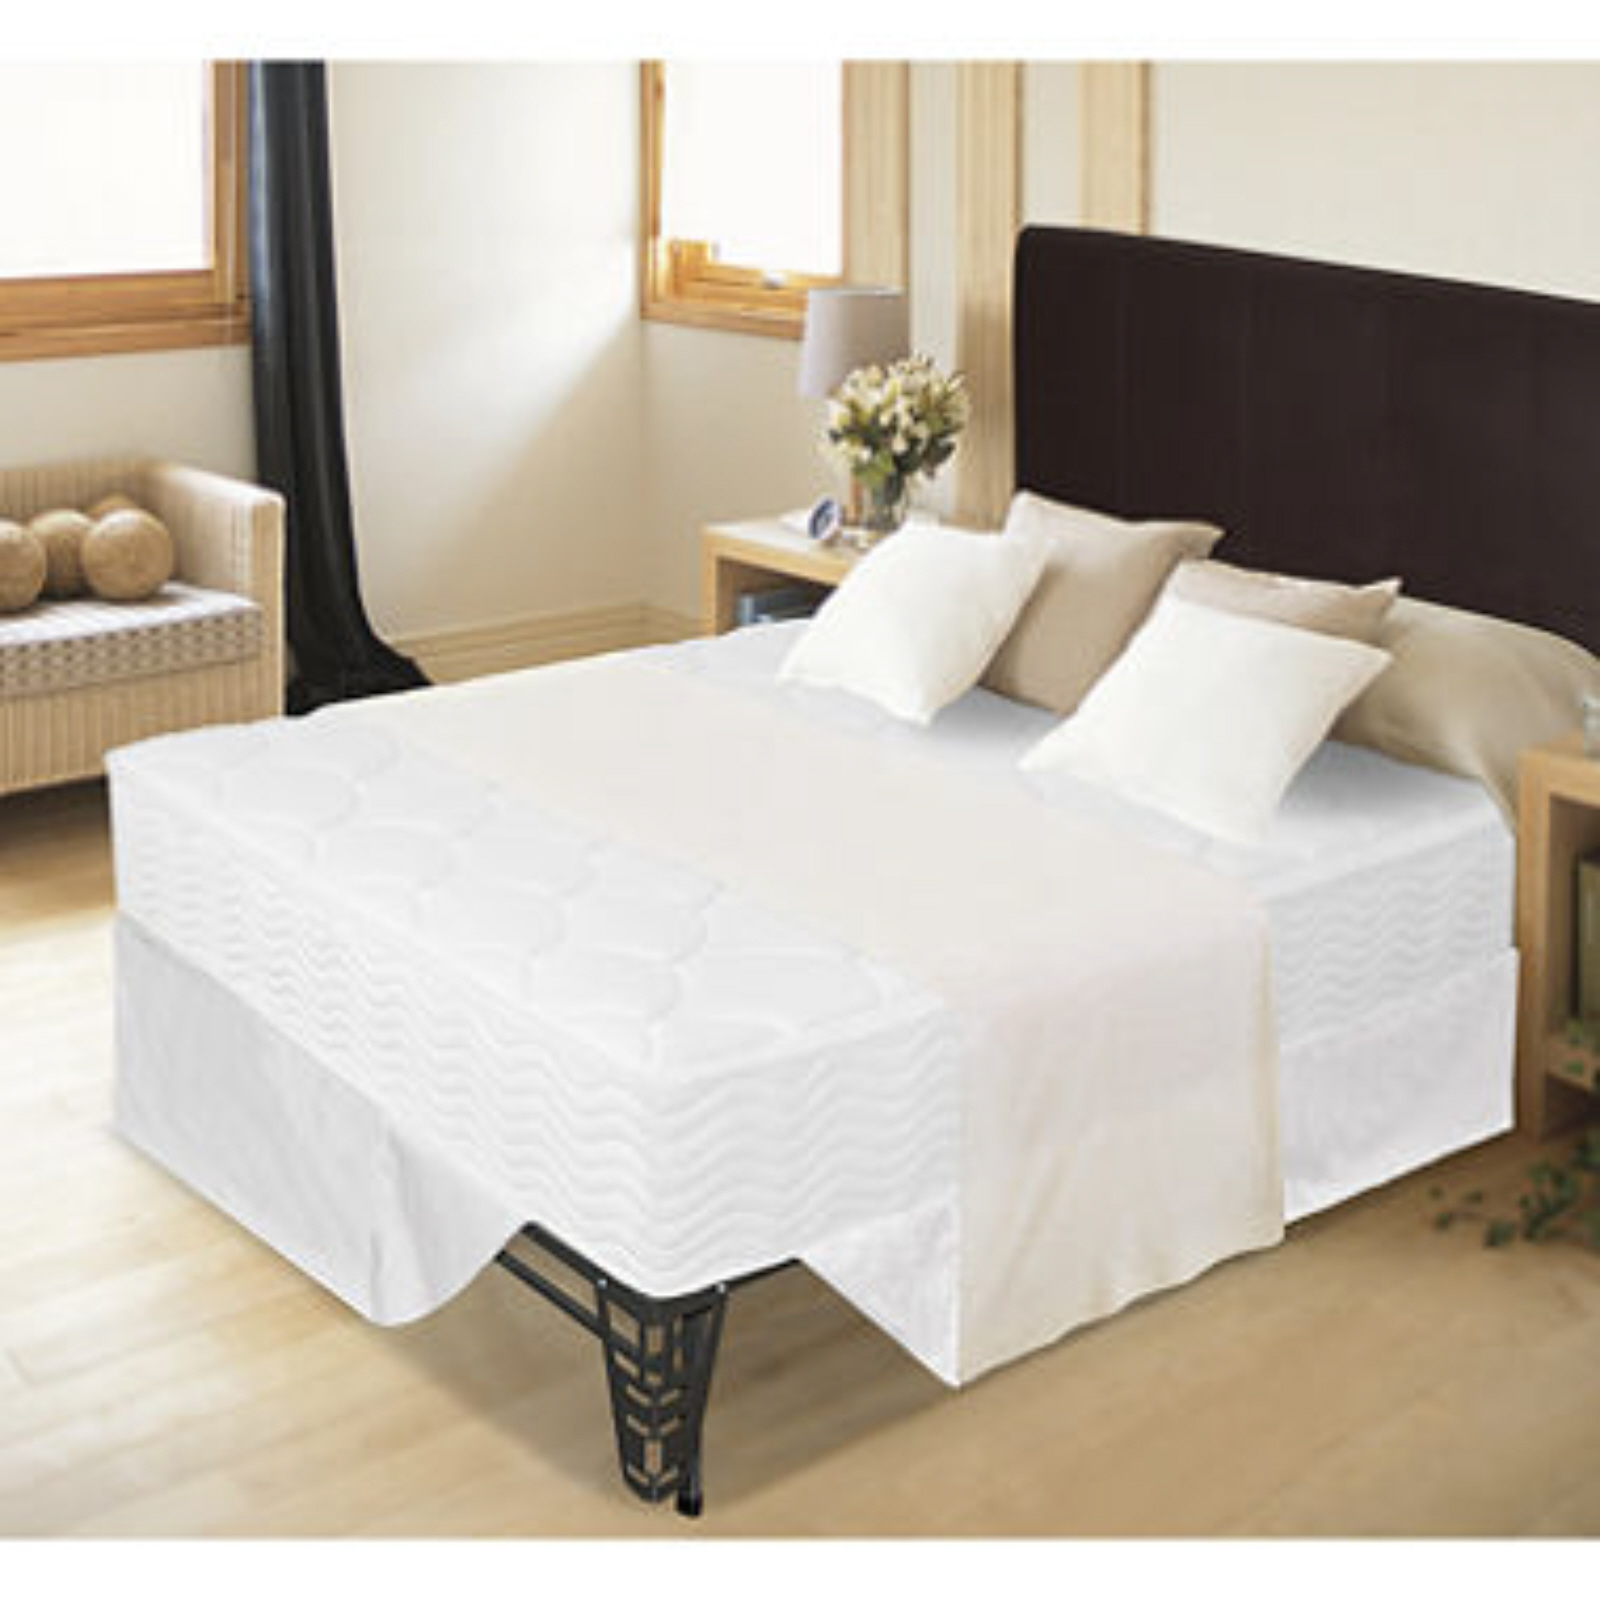 SmartBase Mattress FoundationPlatform Bed Frame  Sleep